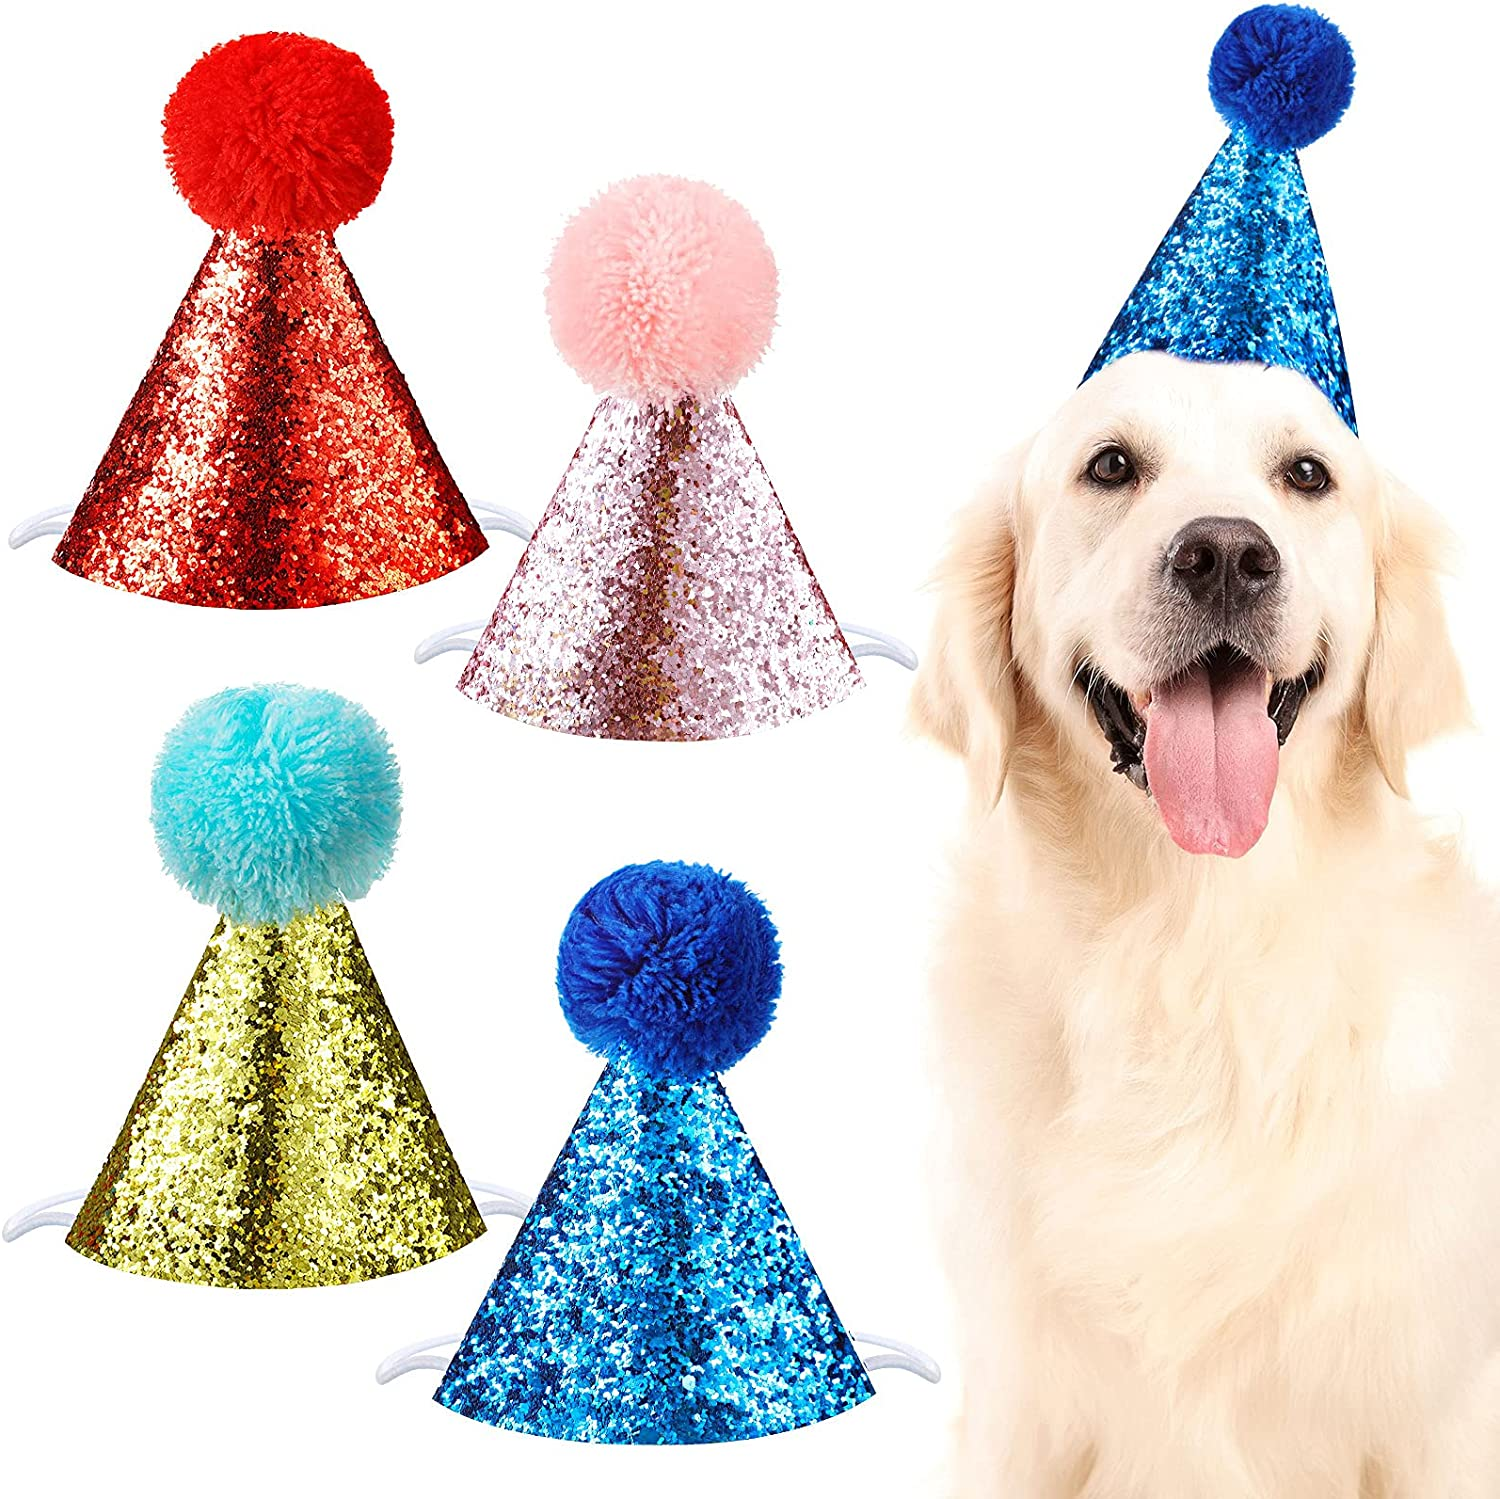 Dog Mail order cheap Birthday Hat for Pets Accessories Headb Pet Decoration Party Luxury goods